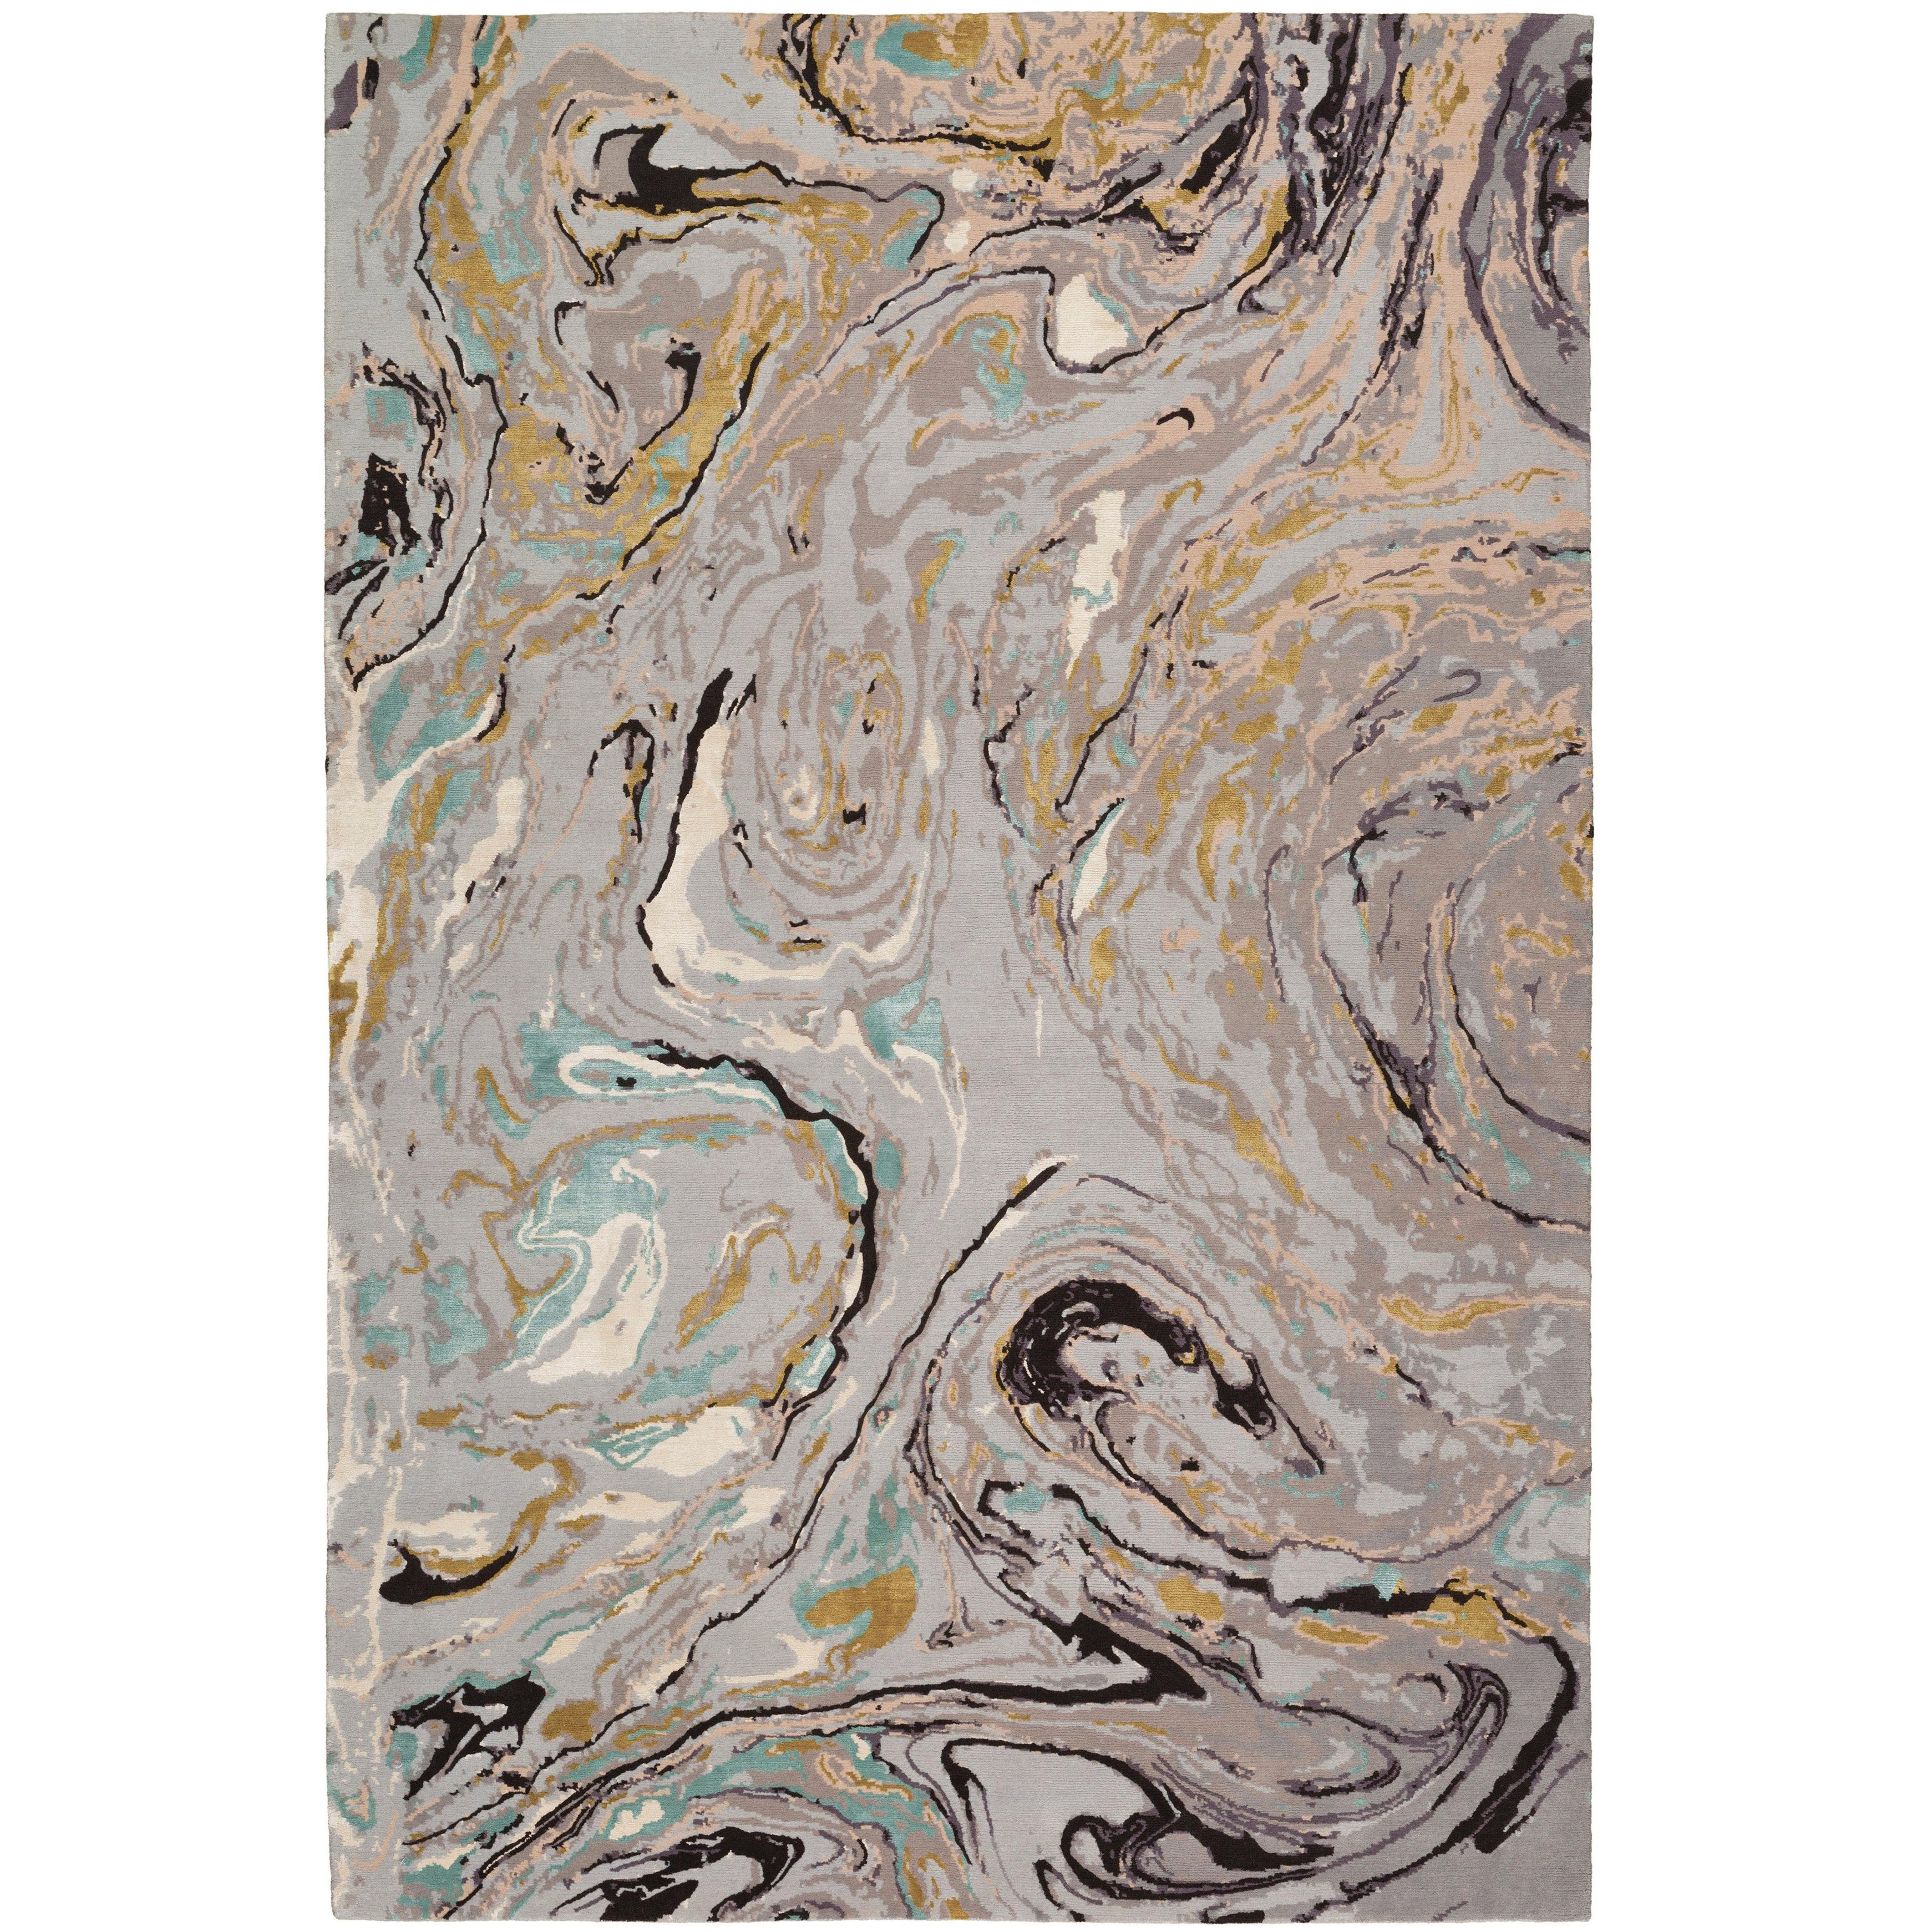 Marble Hand-Knotted 6x4 Rug in Wool and Silk by Rodarte